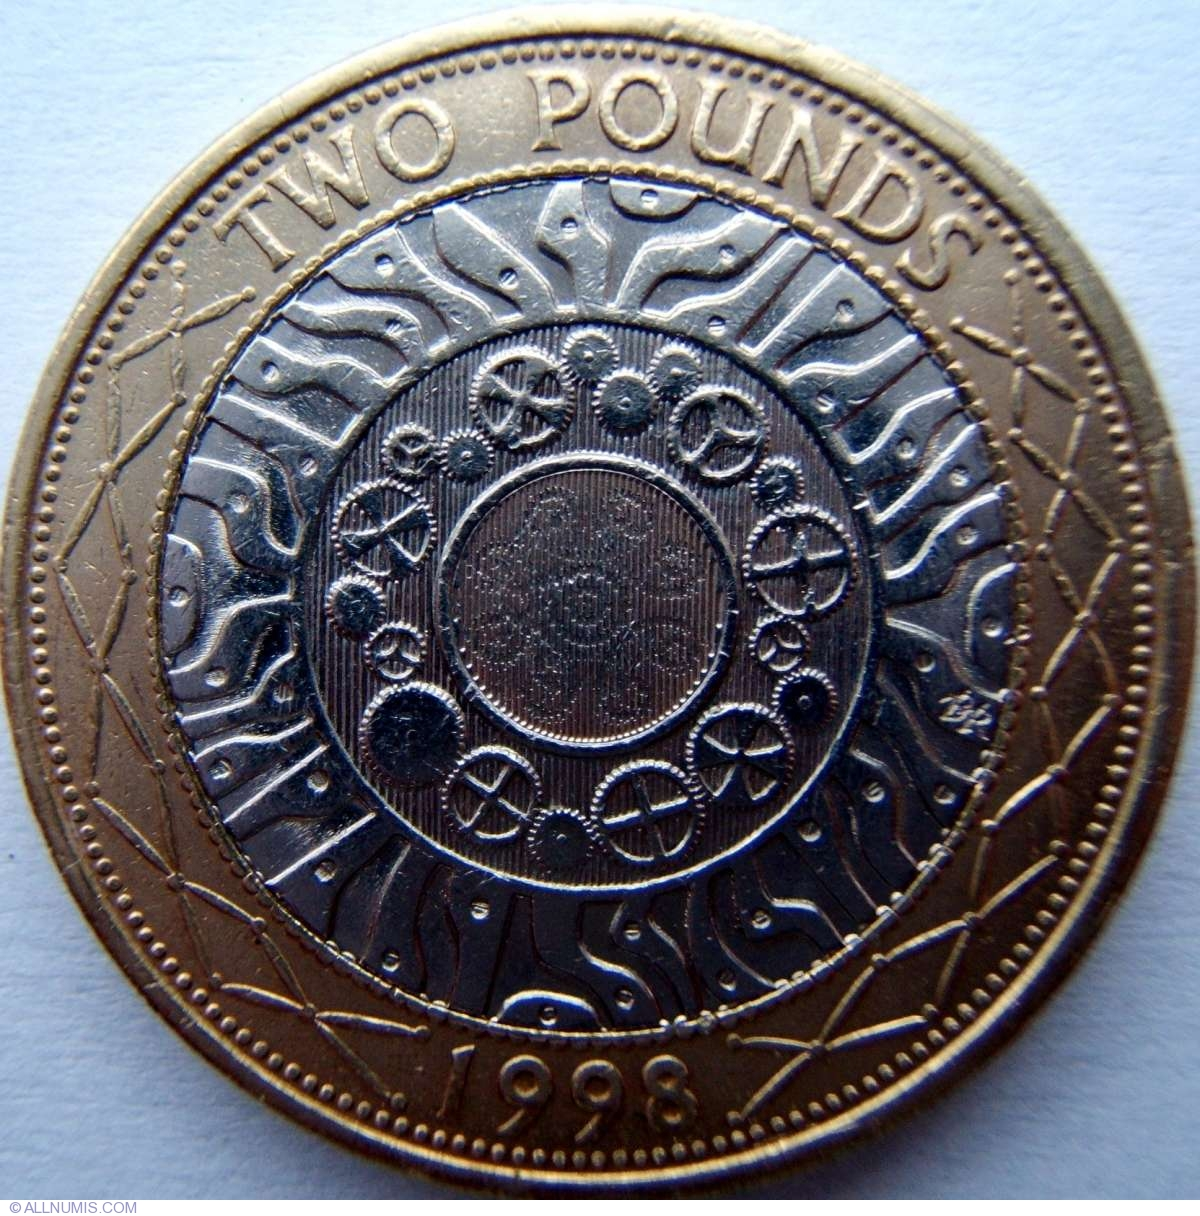 2 Pounds 1998 Elizabeth Ii 2 Pounds Bimetallic 1997